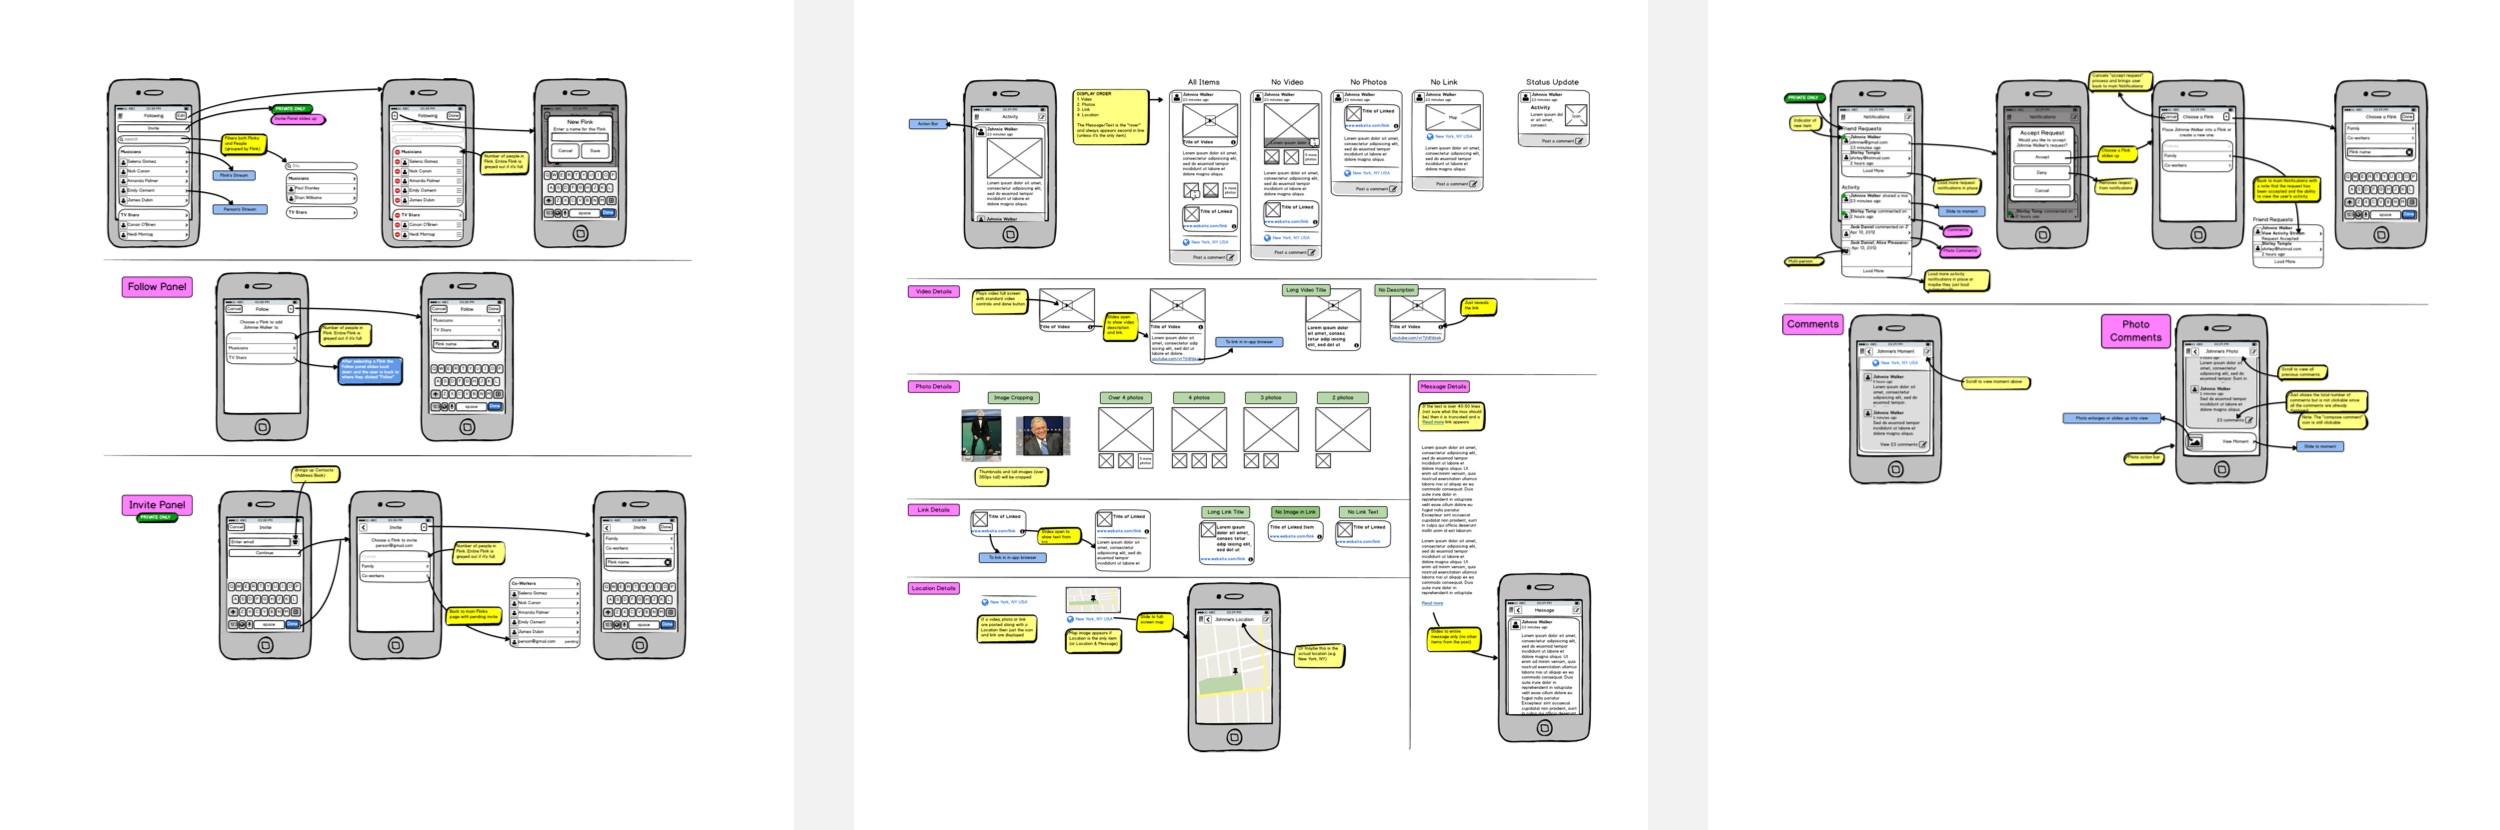 For these wireframes I included detailed interaction instructions for the developers.